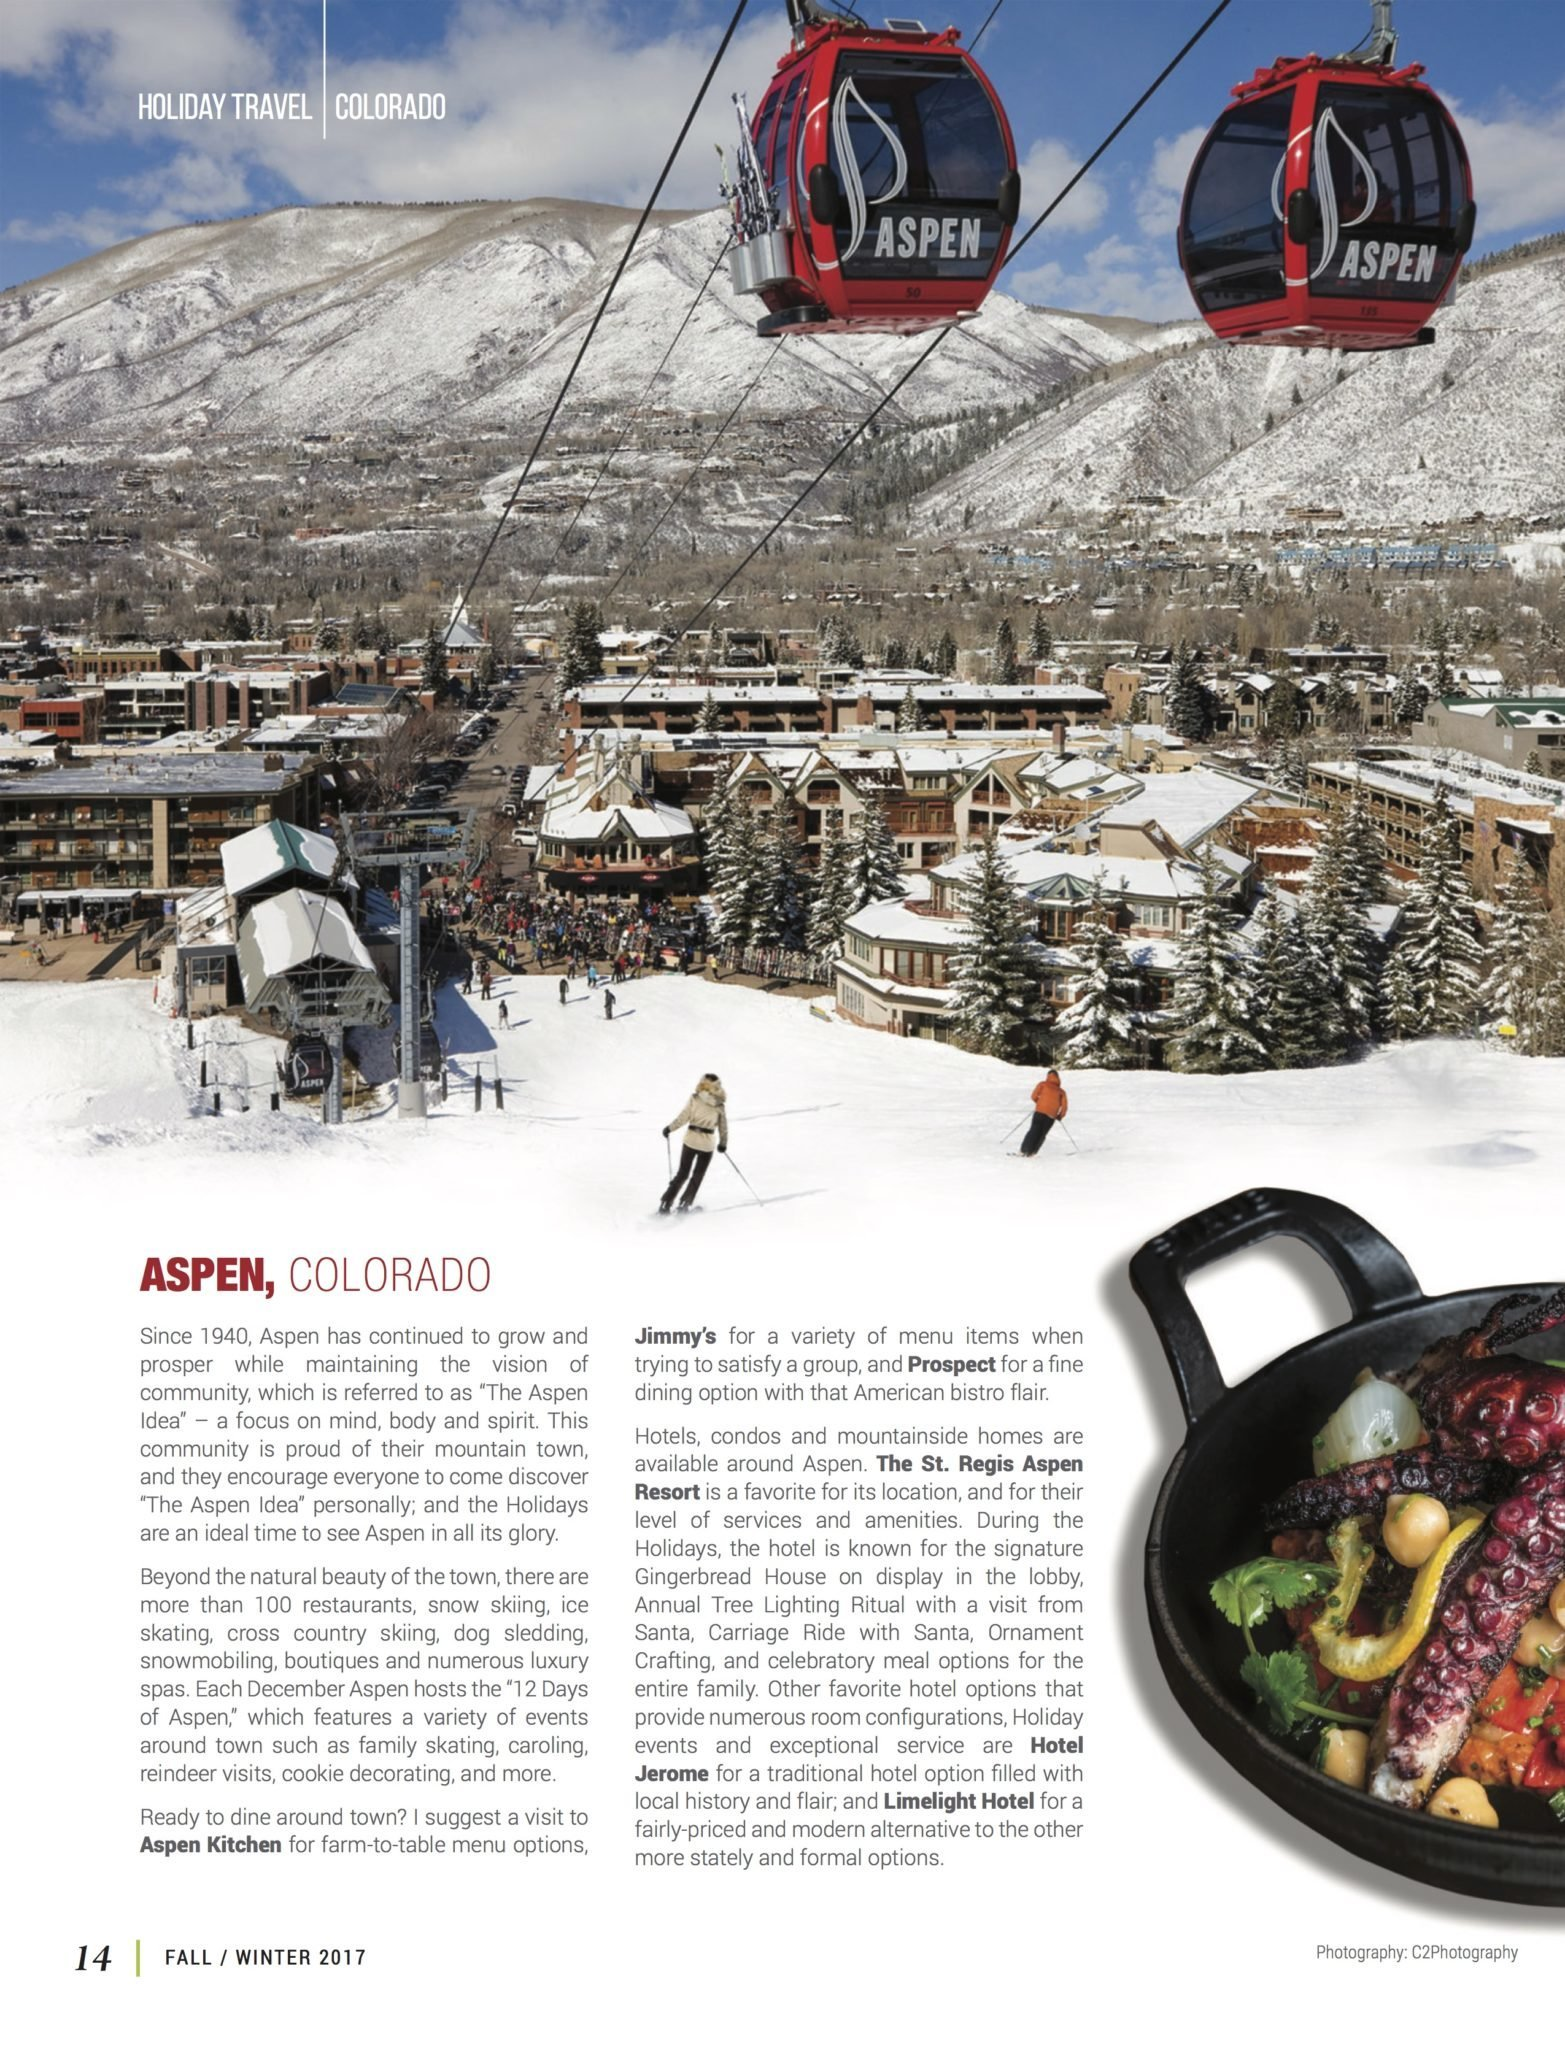 LuxeGetaways - Luxury Travel - Luxury Travel Magazine - Luxe Getaways - Luxury Lifestyle - Fall/Winter 2017 Magazine Issue - Digital Magazine - Travel Magazine - Vail - Telluride - Aspen - Damon Banks